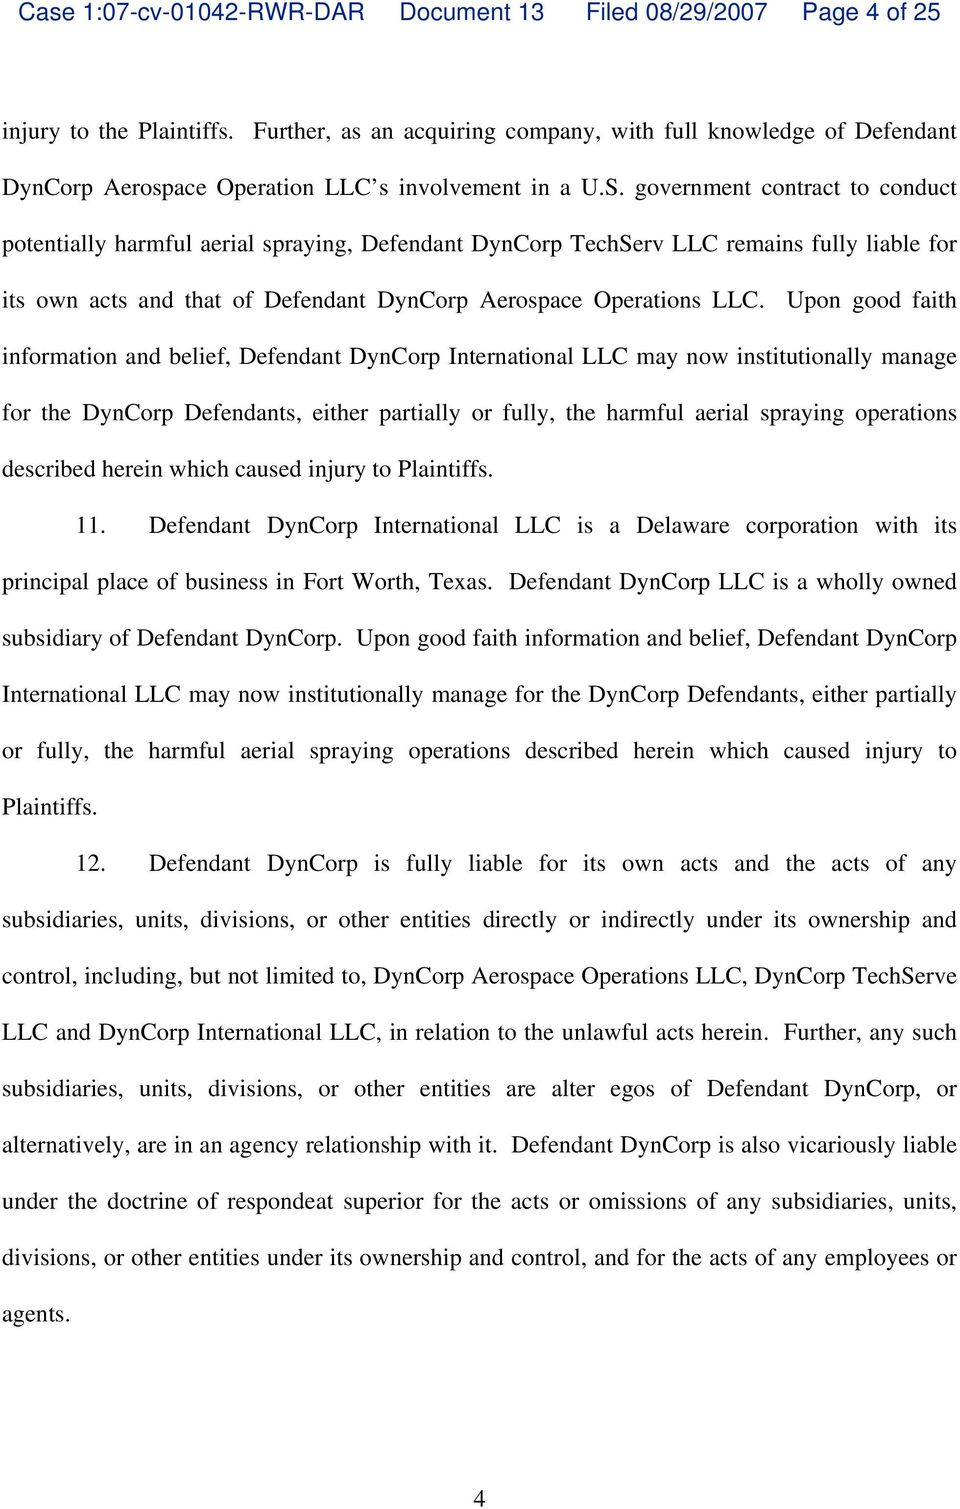 government contract to conduct potentially harmful aerial spraying, Defendant DynCorp TechServ LLC remains fully liable for its own acts and that of Defendant DynCorp Aerospace Operations LLC.